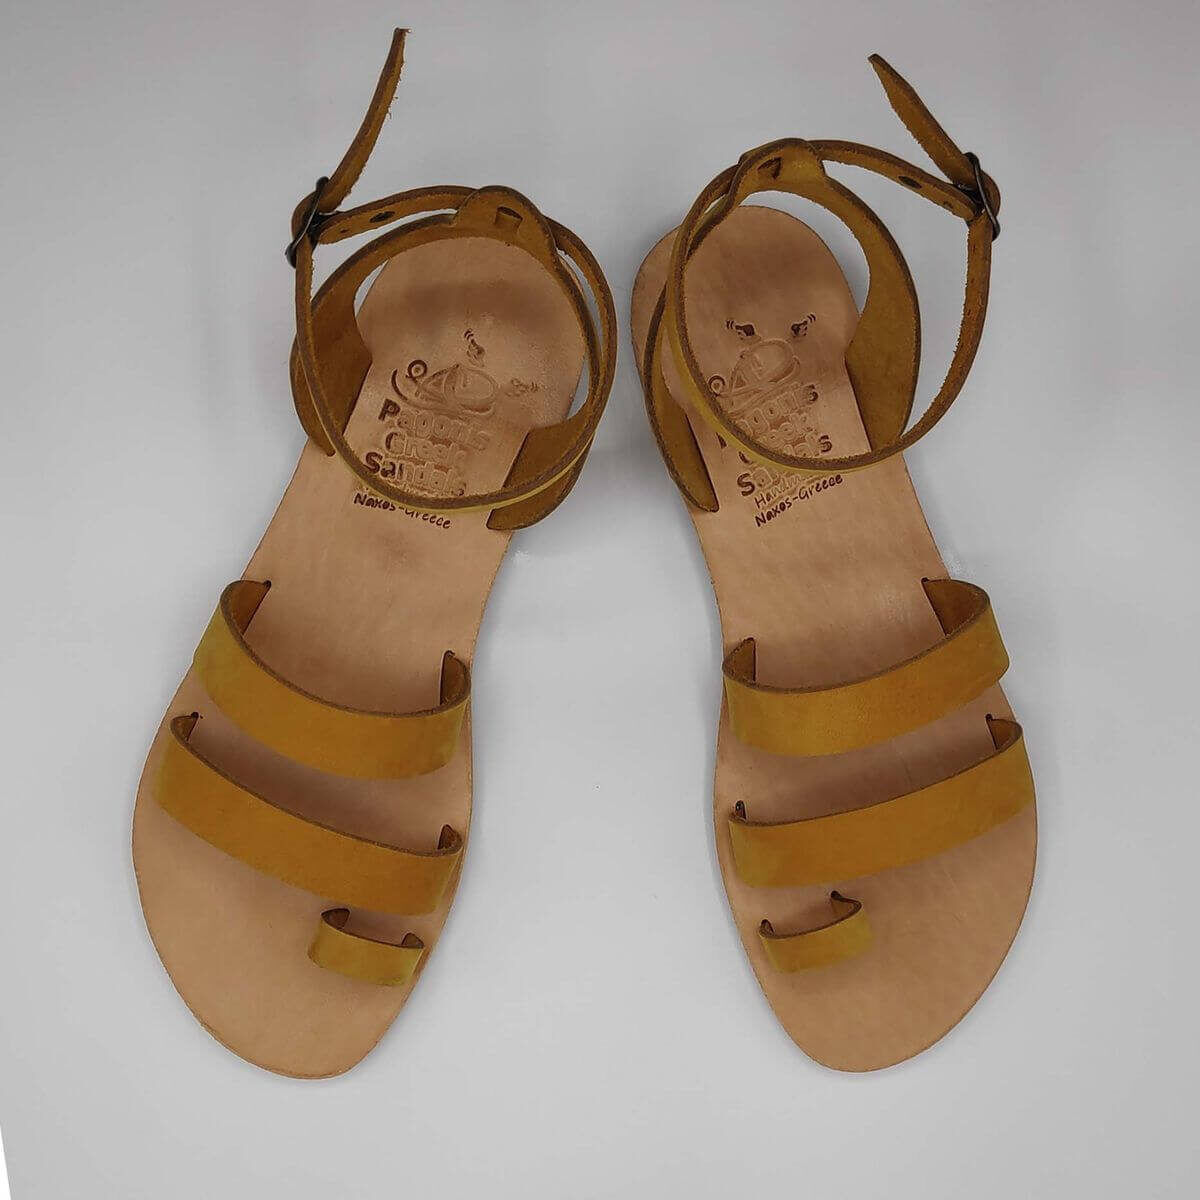 Yellow Nubuck leather dressy sandals with two straps, toe ring and high ankle strap, top view